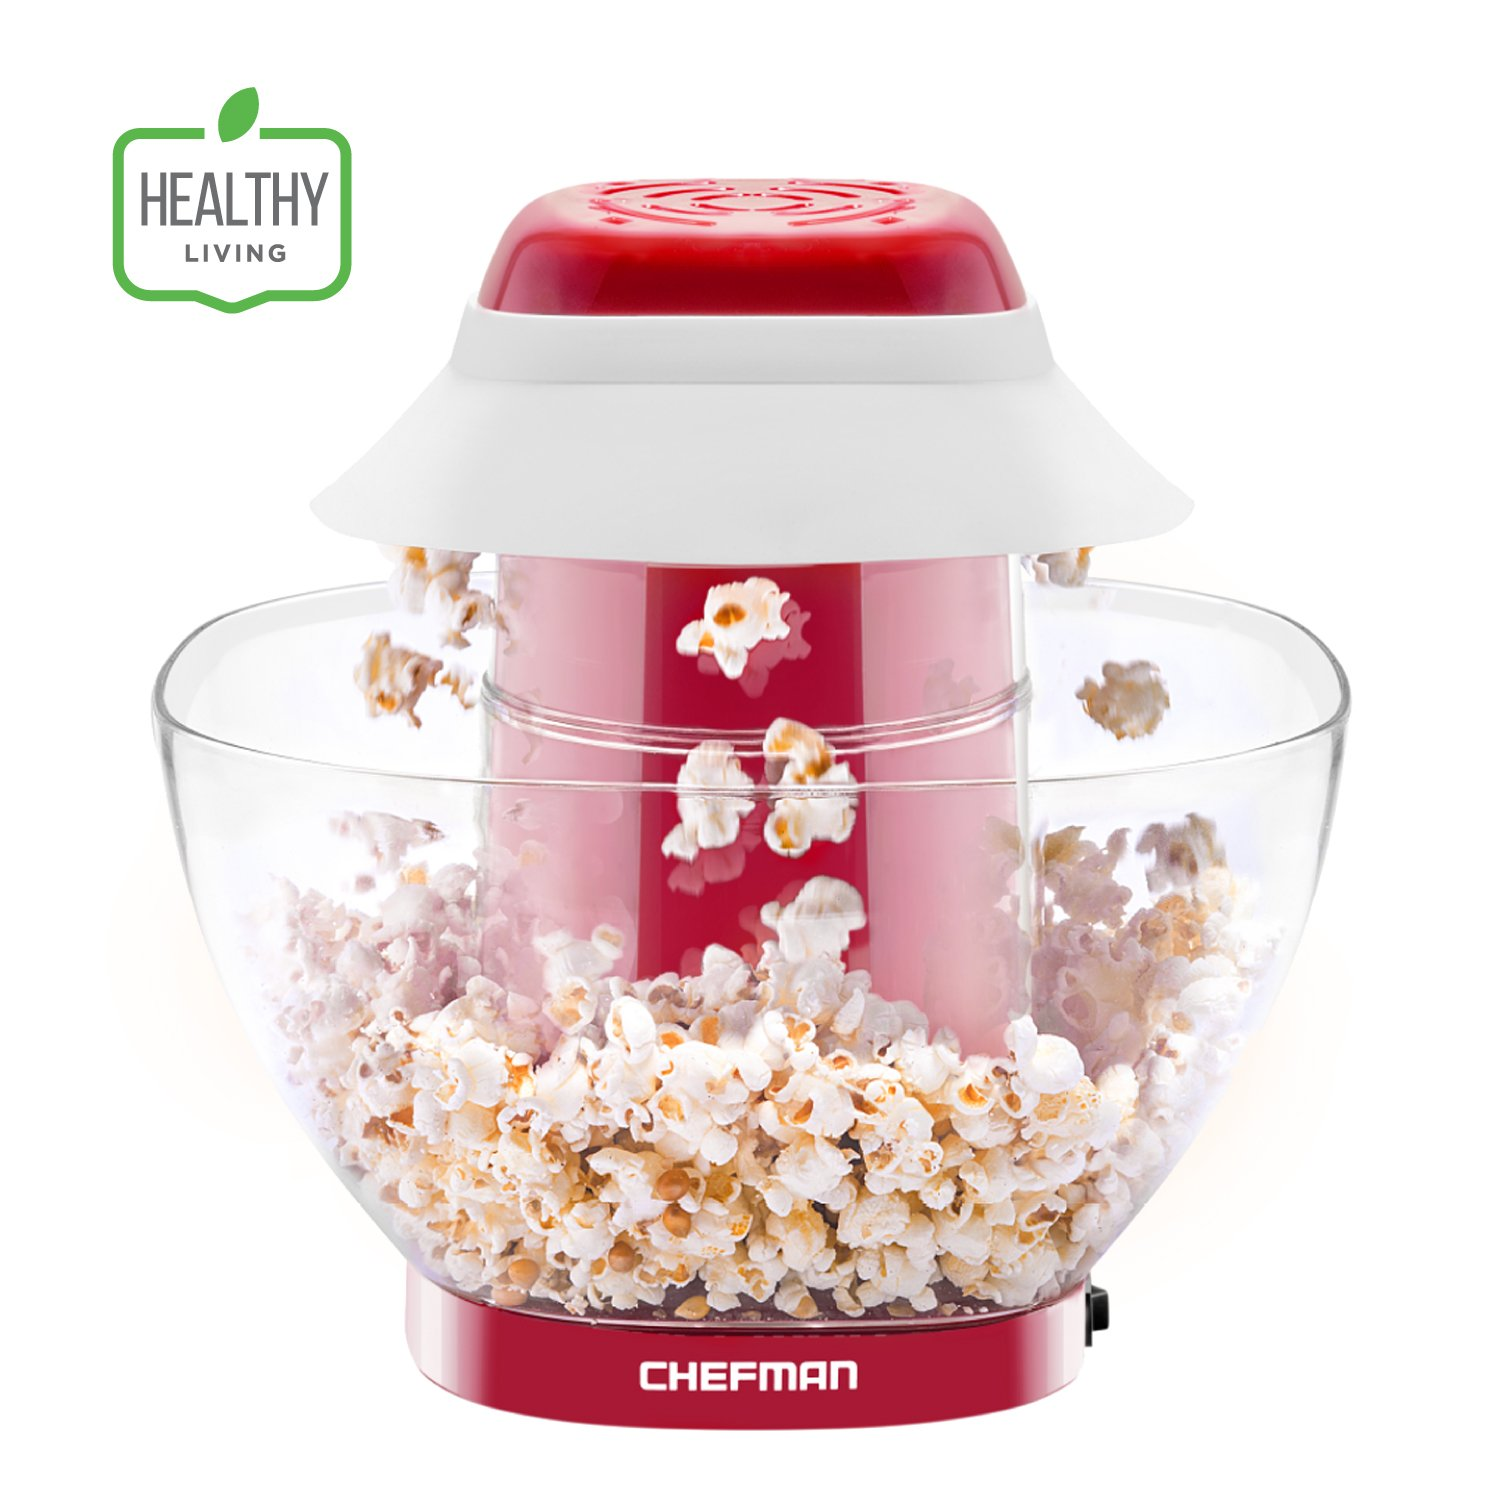 Chefman Electric Perfect Pop Volcano Popcorn Maker with Removable Serving Bowl, Healthier & Faster Than Microwave, No Oil Needed, Mess Free, Dishwasher Safe Parts, Family Size, 12 Cups, Red